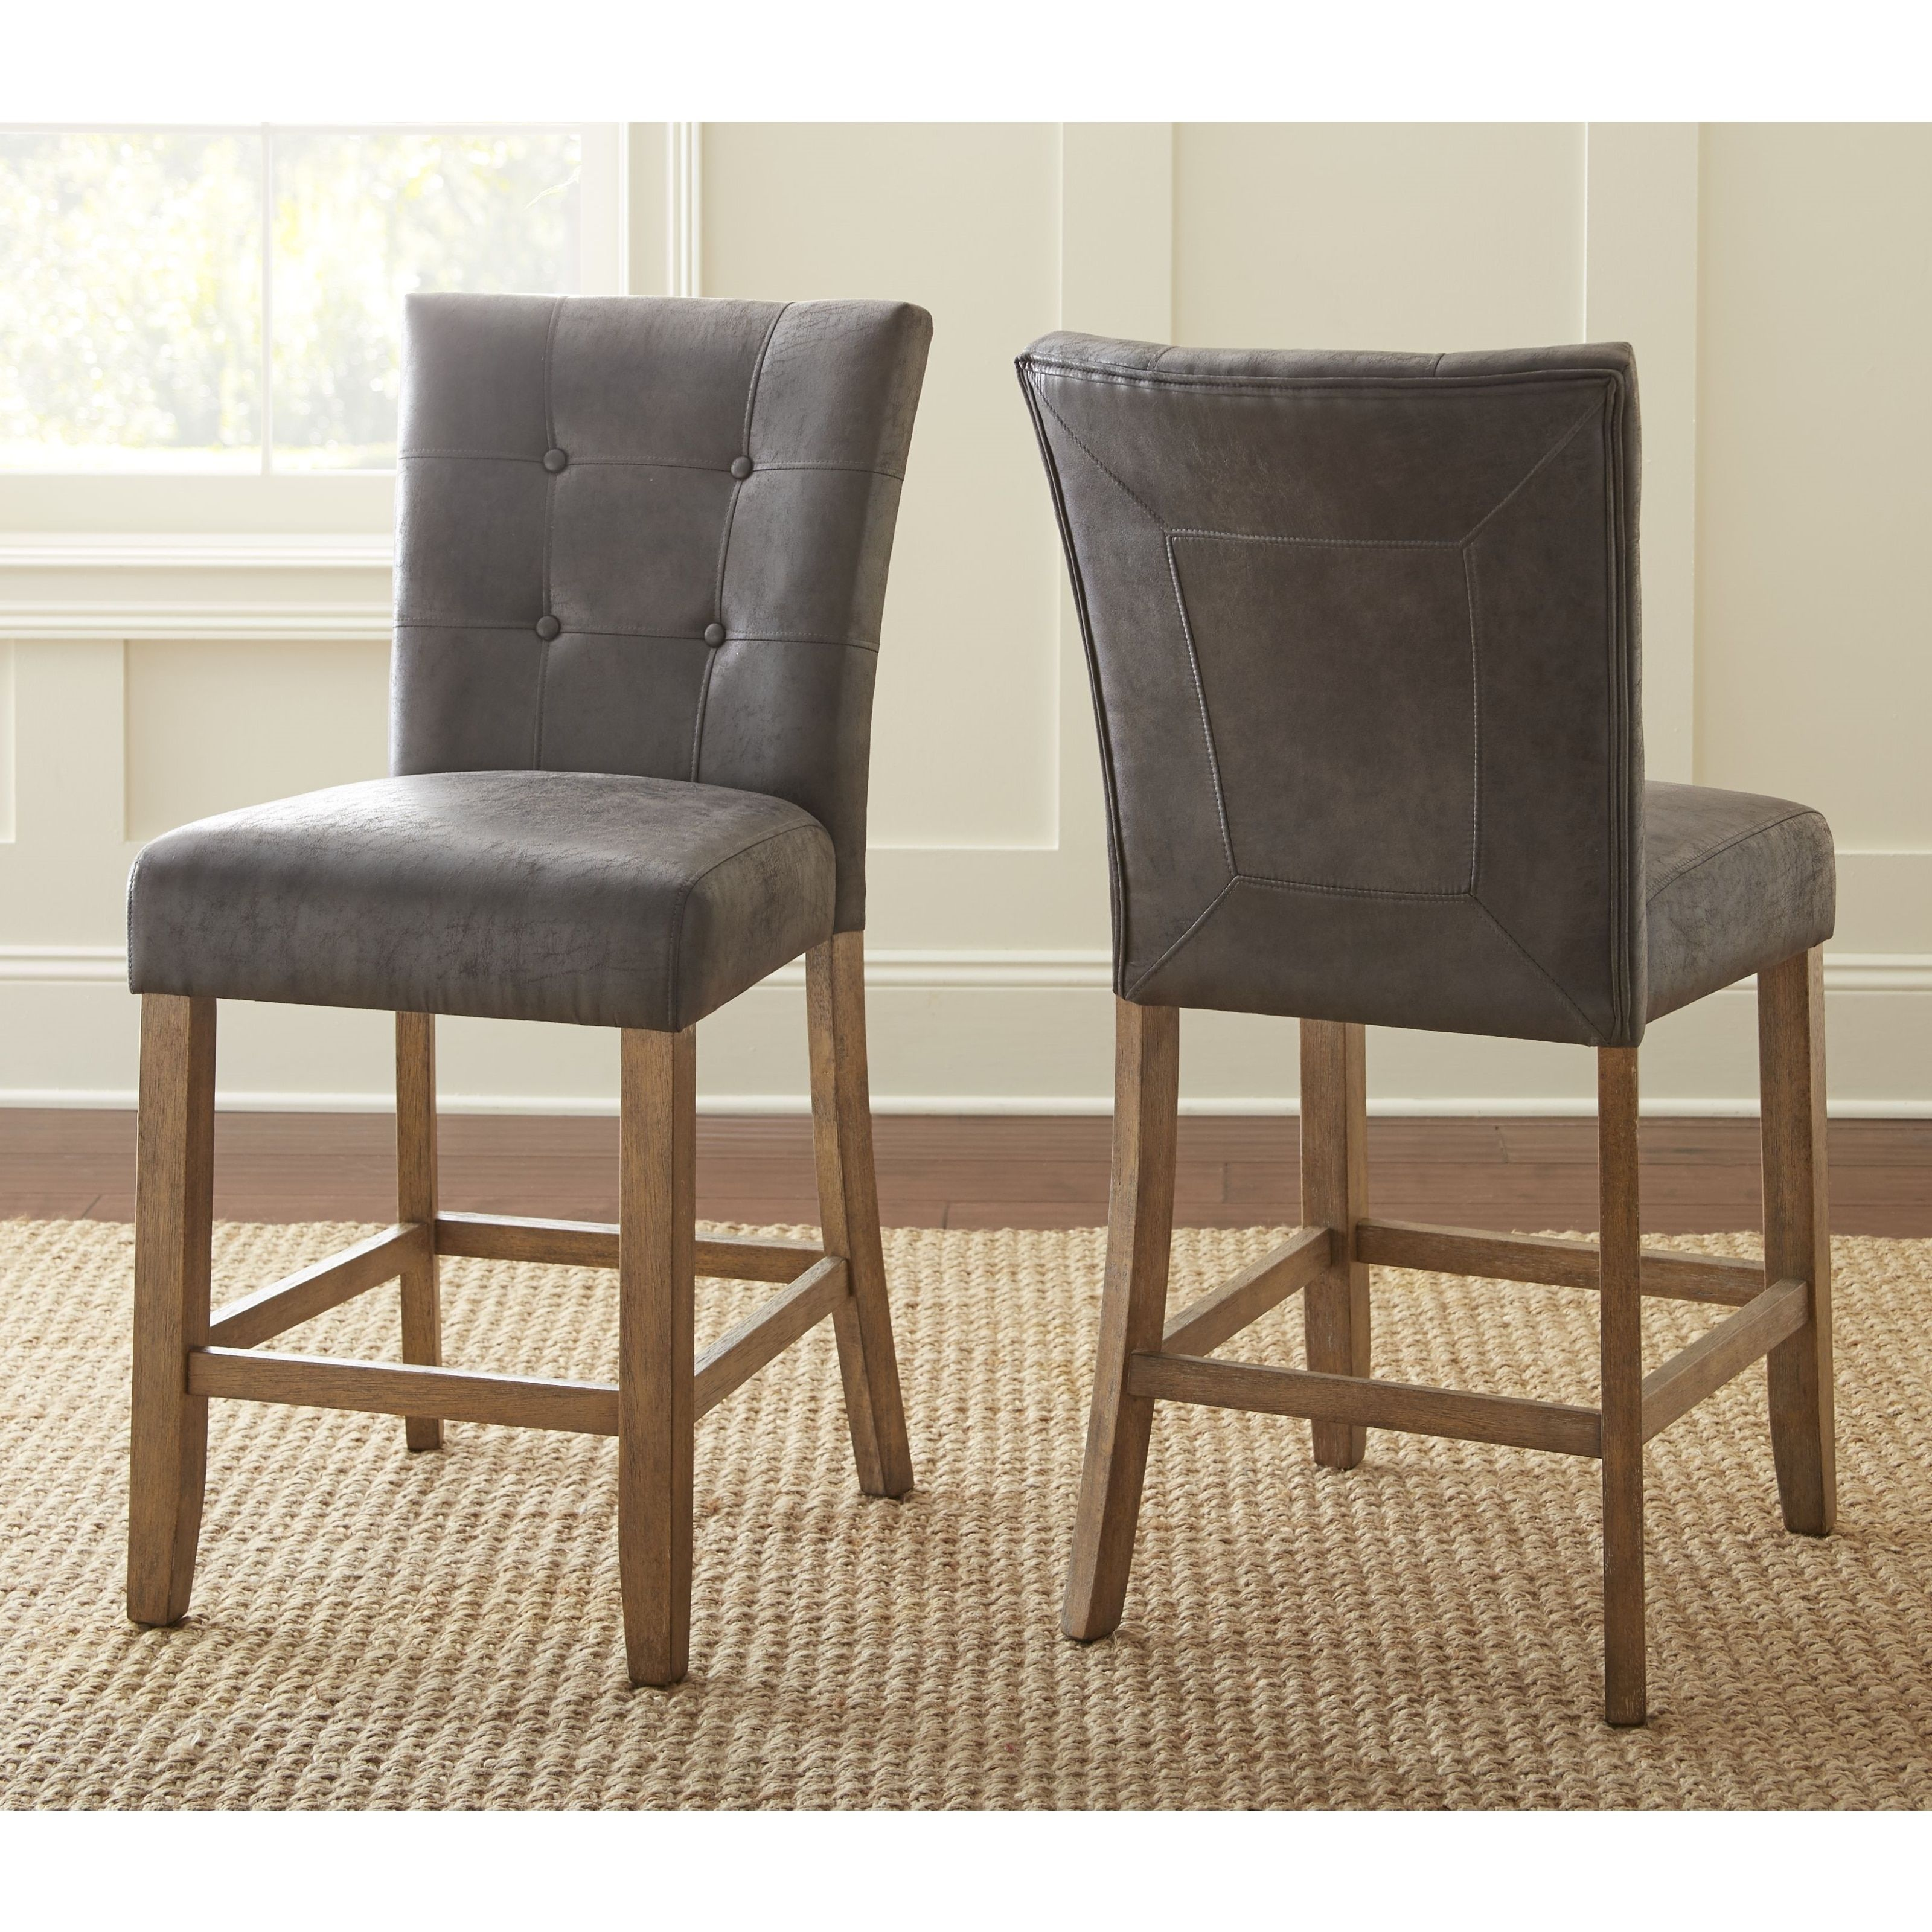 The Gray Barn Brush Creek Upholstered Counter Height Dining Chair